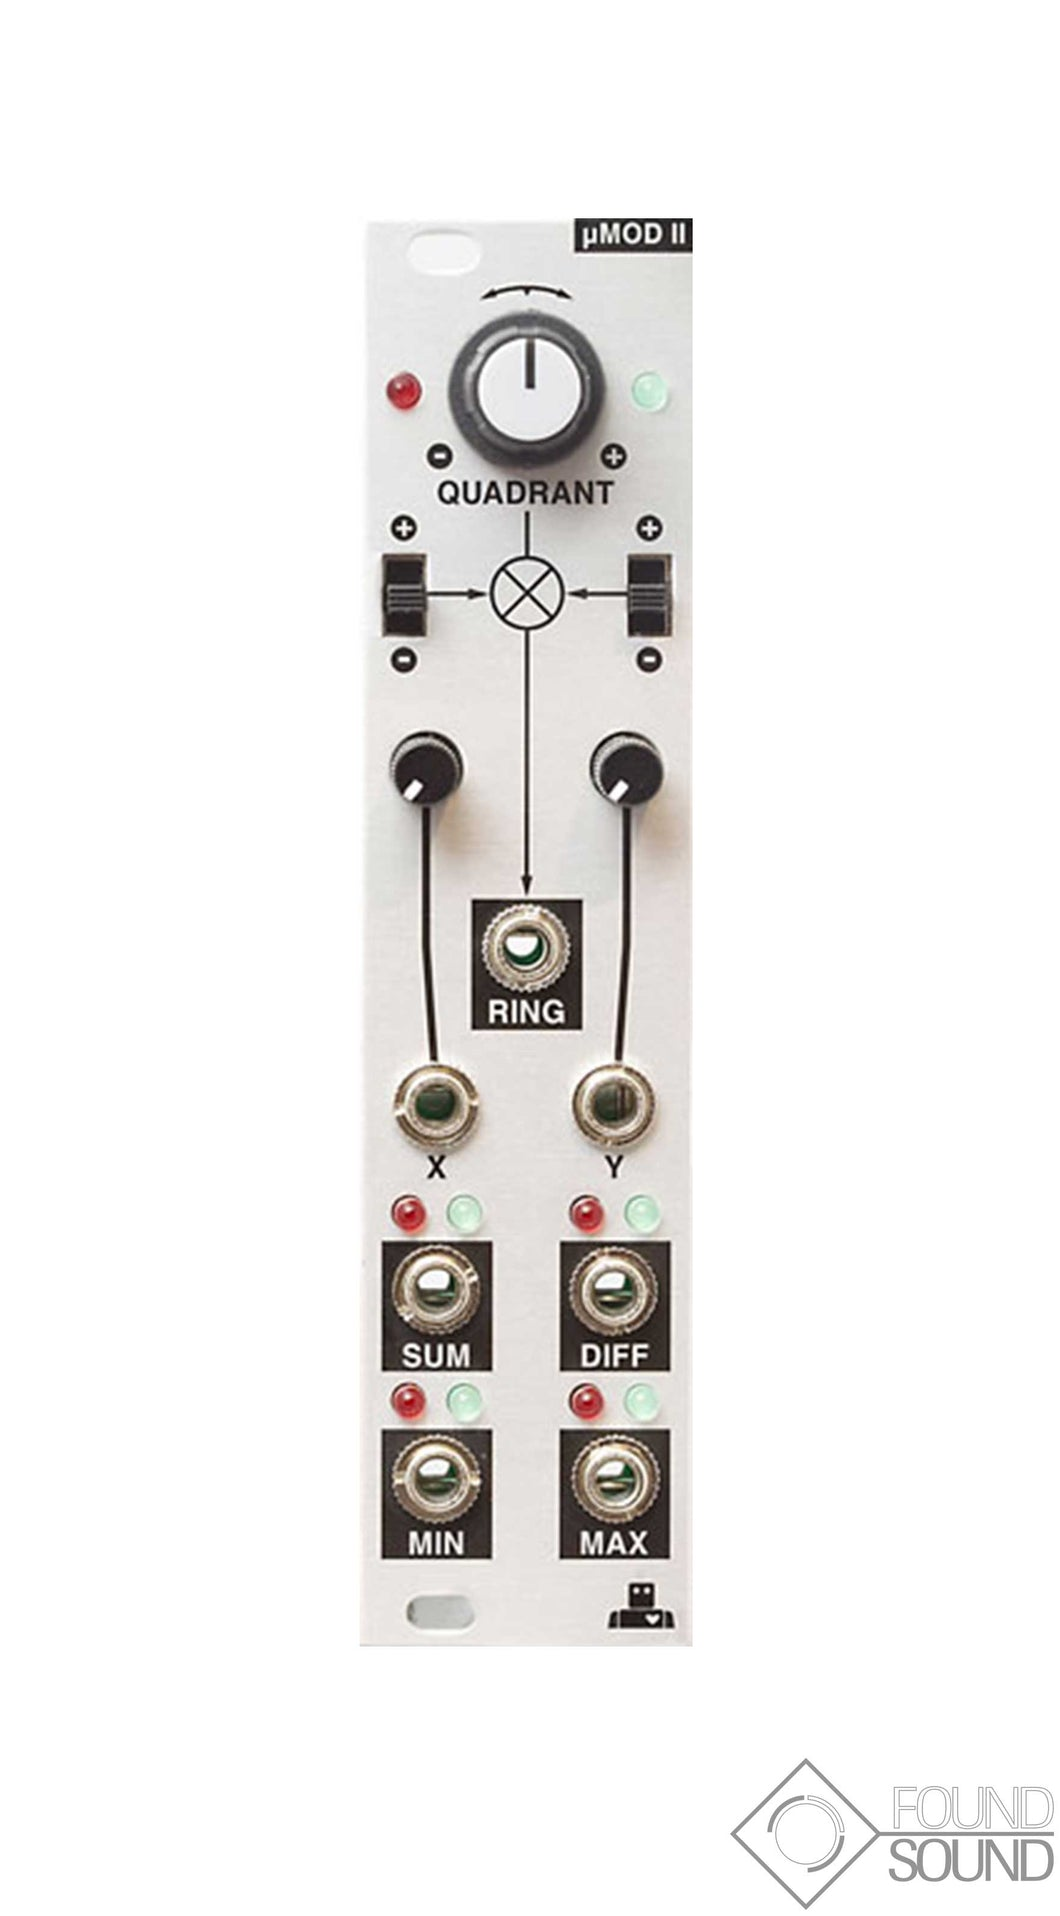 Intellijel uMod II